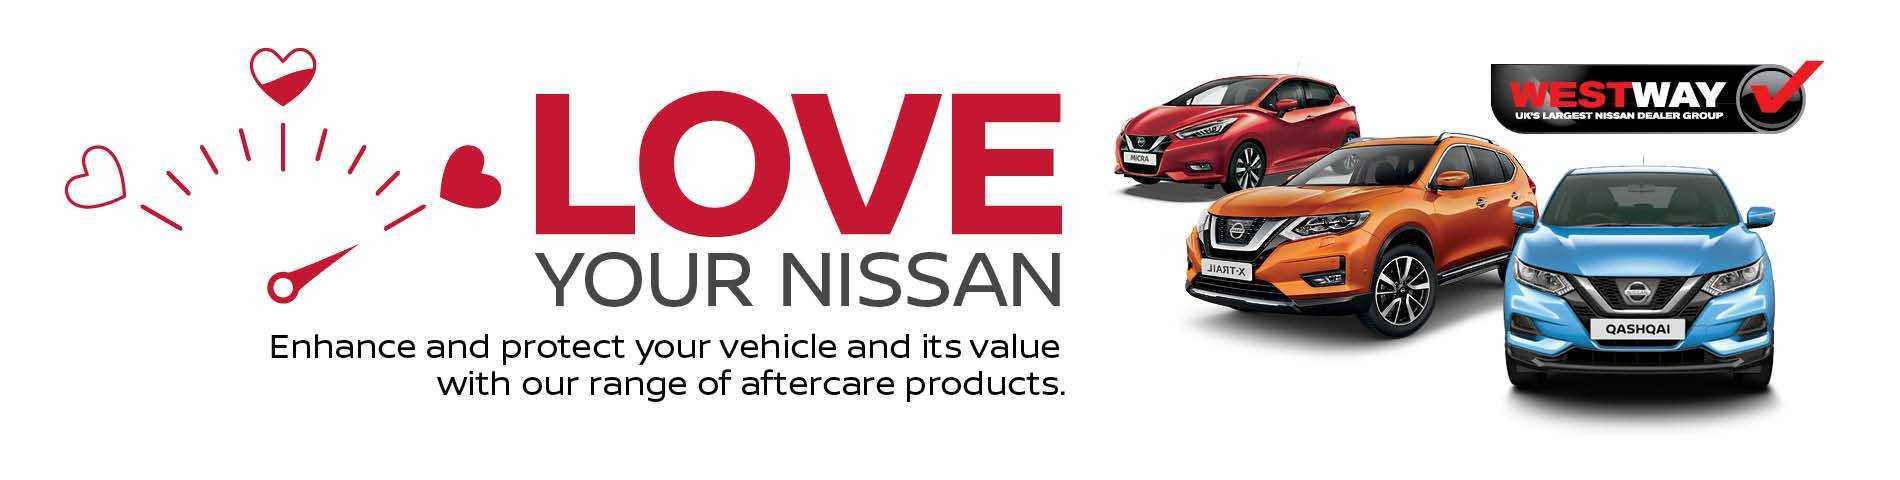 Love Your Nissan - Aftercare Products and Services